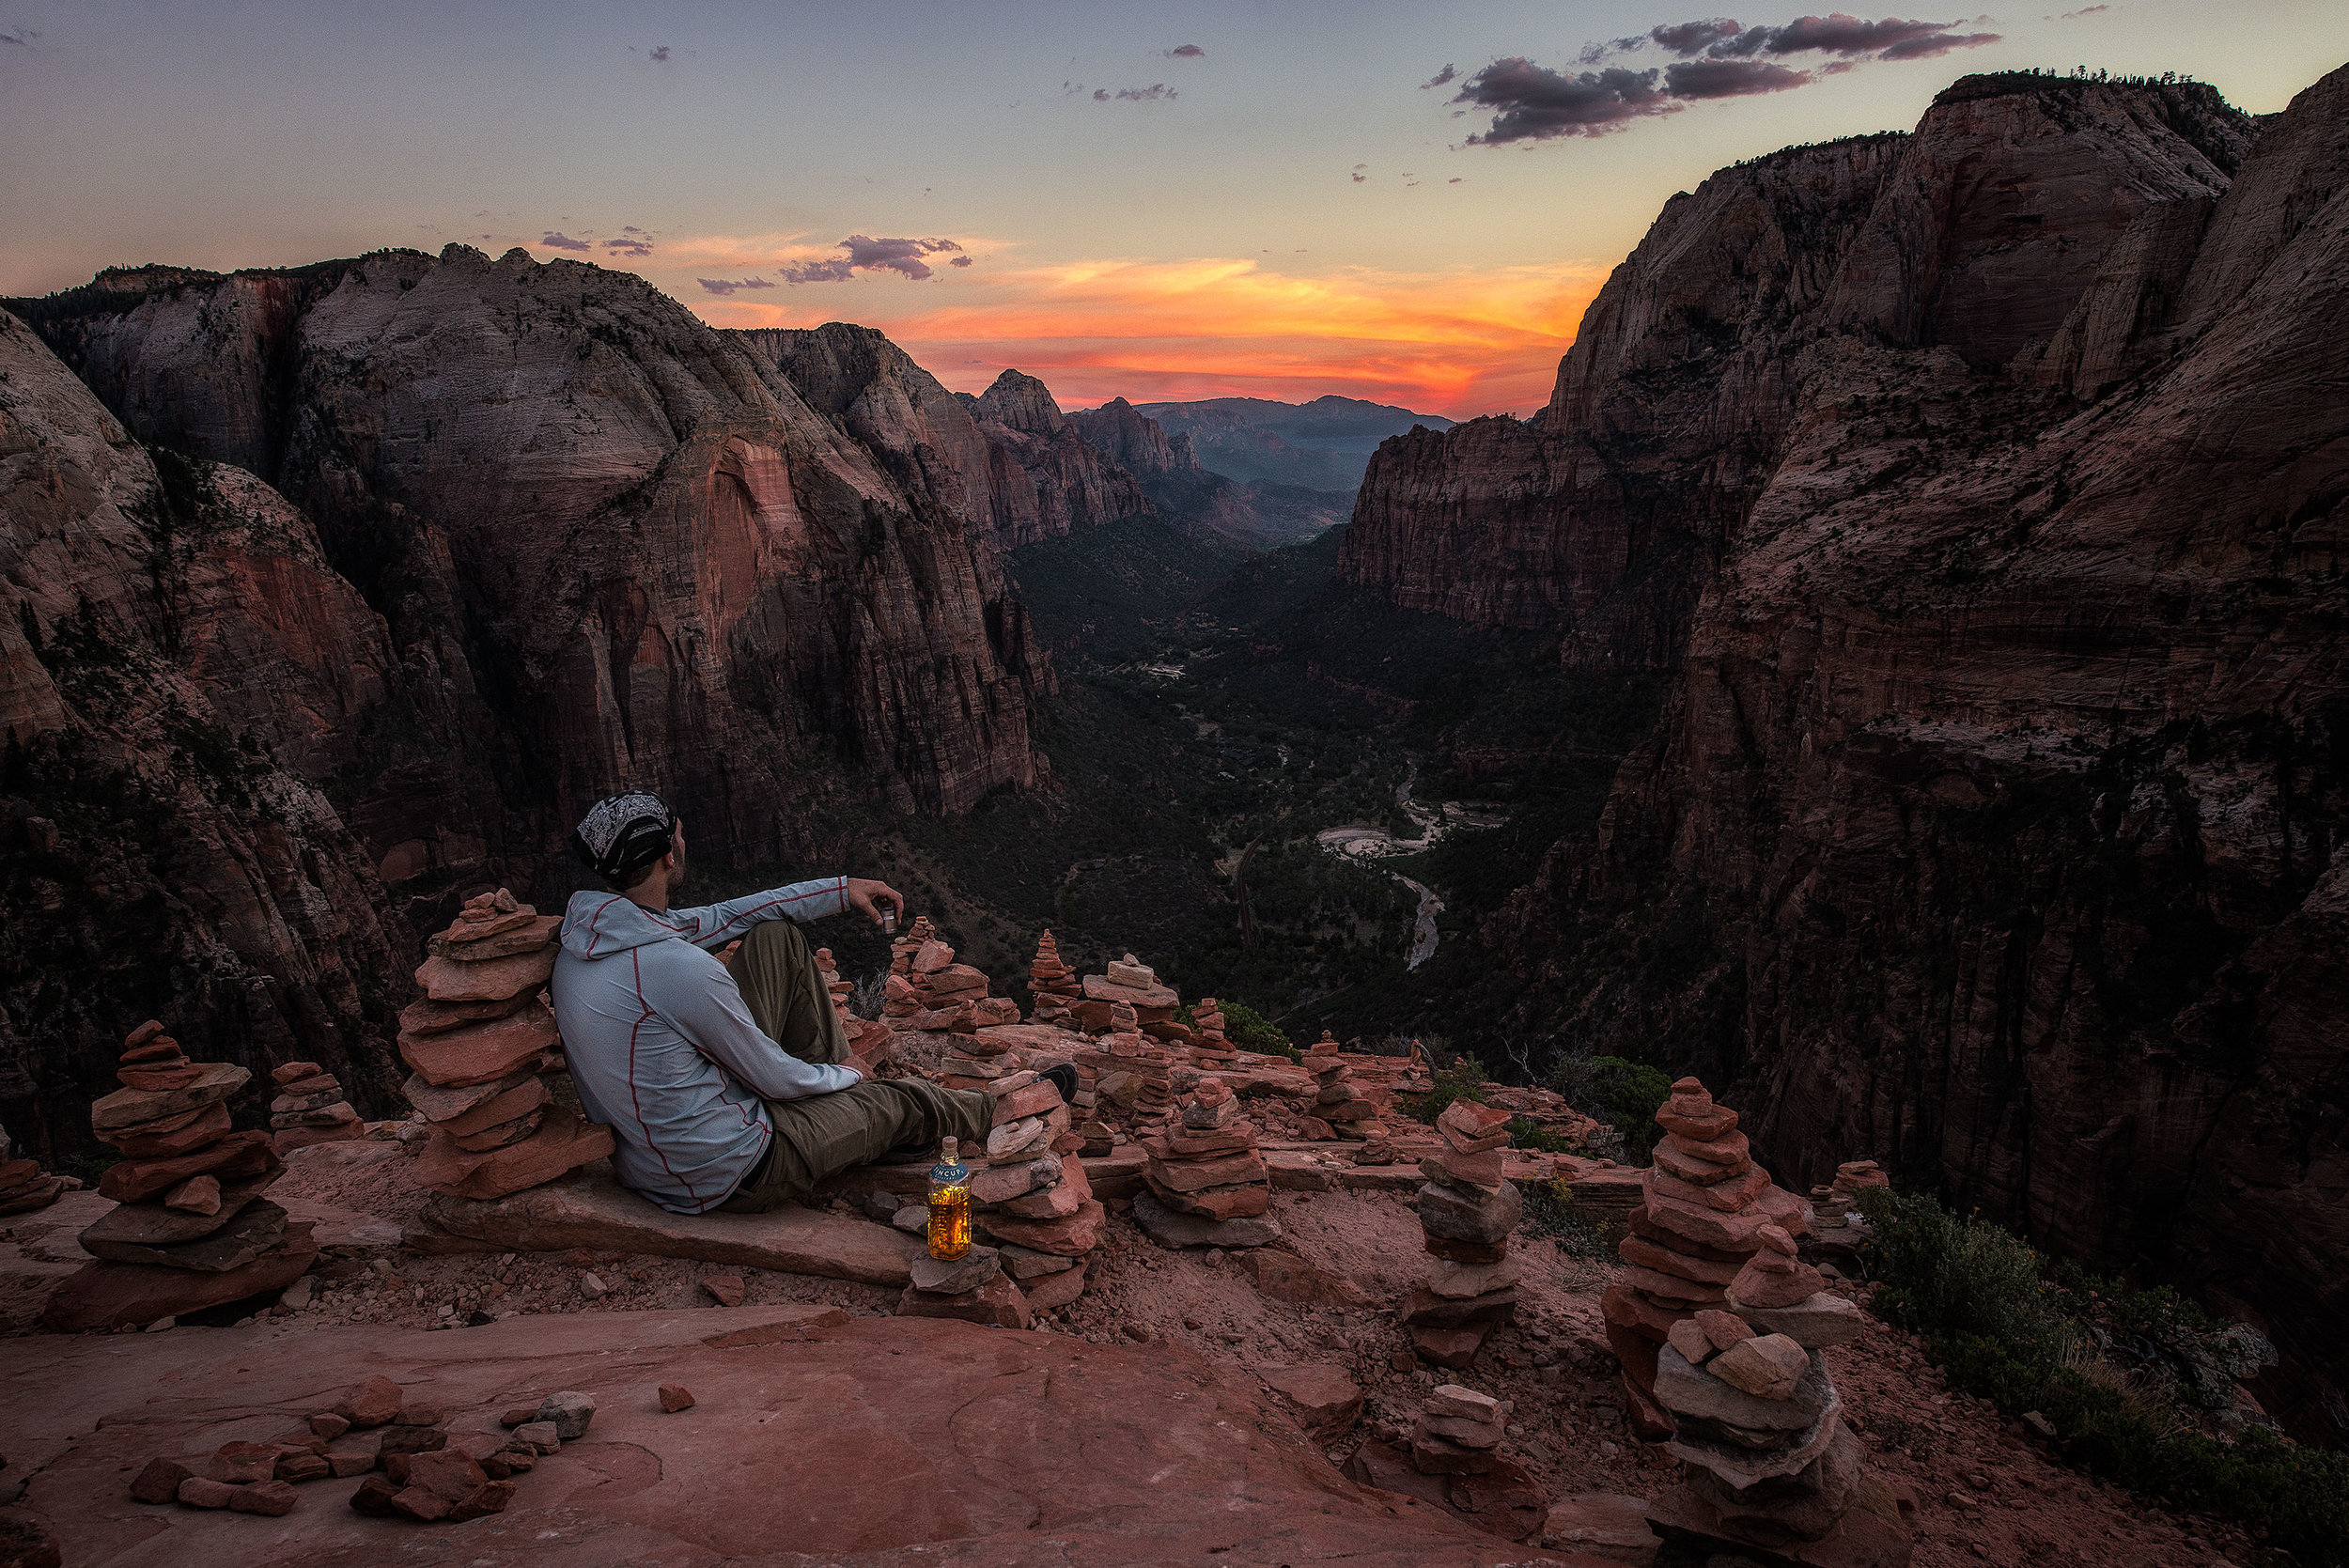 austin-trigg-whiskey-lifestyle-zion-product-TINCUP-Sunset-Cairn-Sitting-valley.jpg